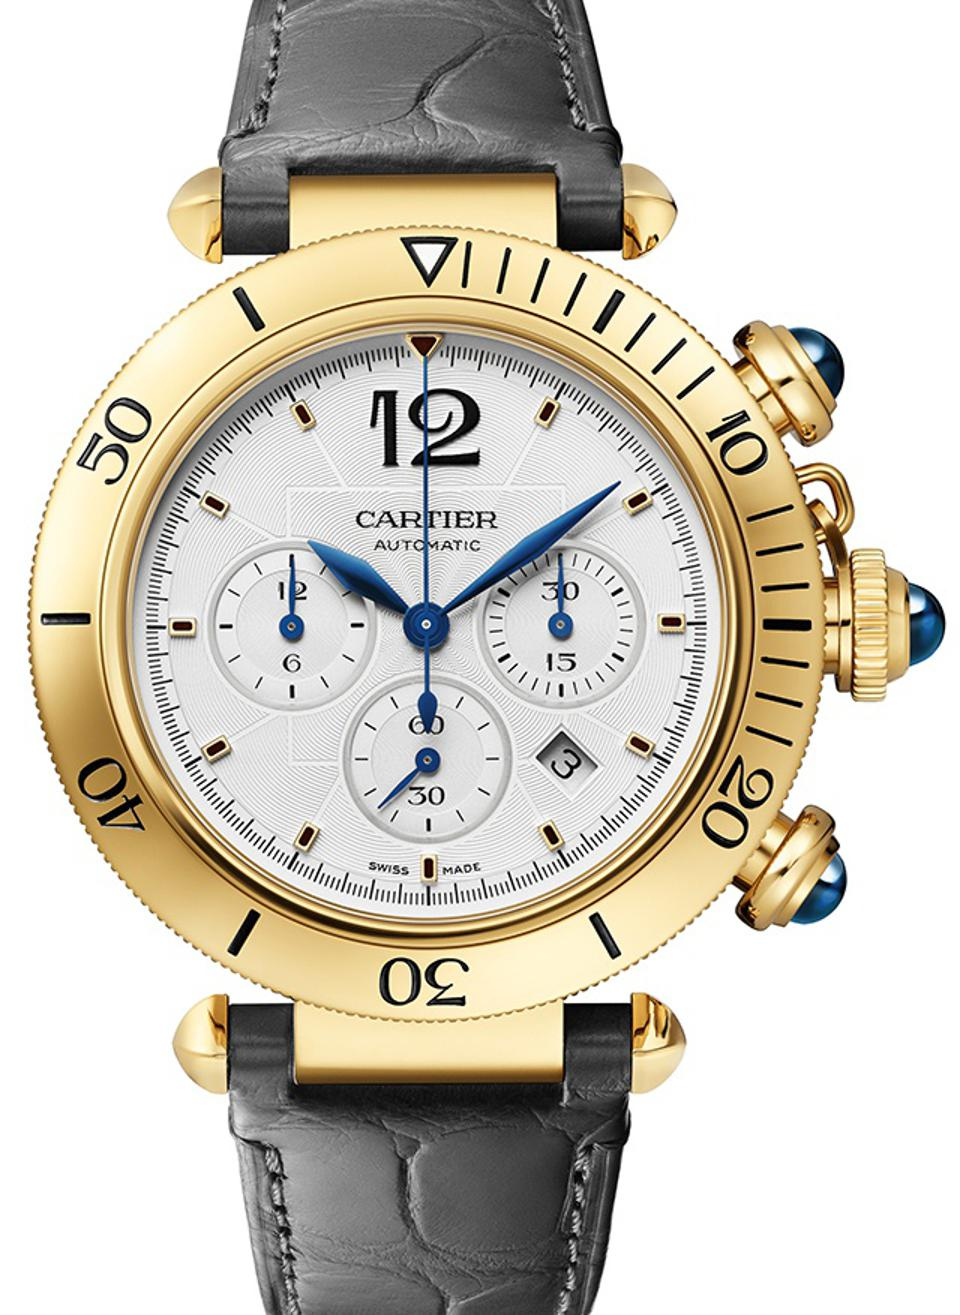 The new Cartier Pasha chronograph in gold.